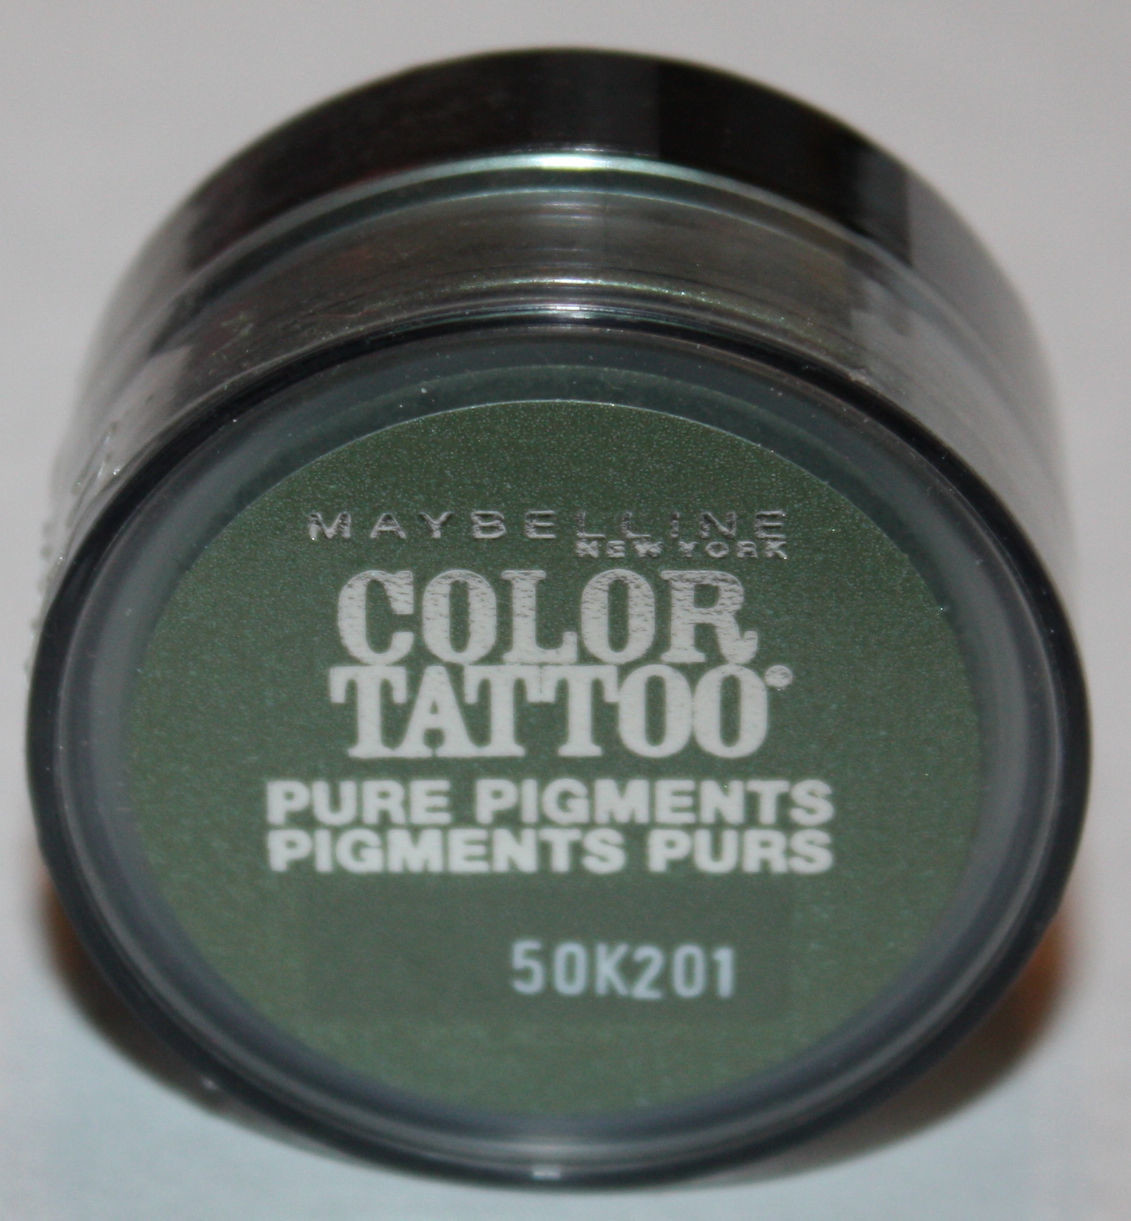 Maybelline Color Tattoo Pure Pigments Eyeshadow -#50 Forest Fatale